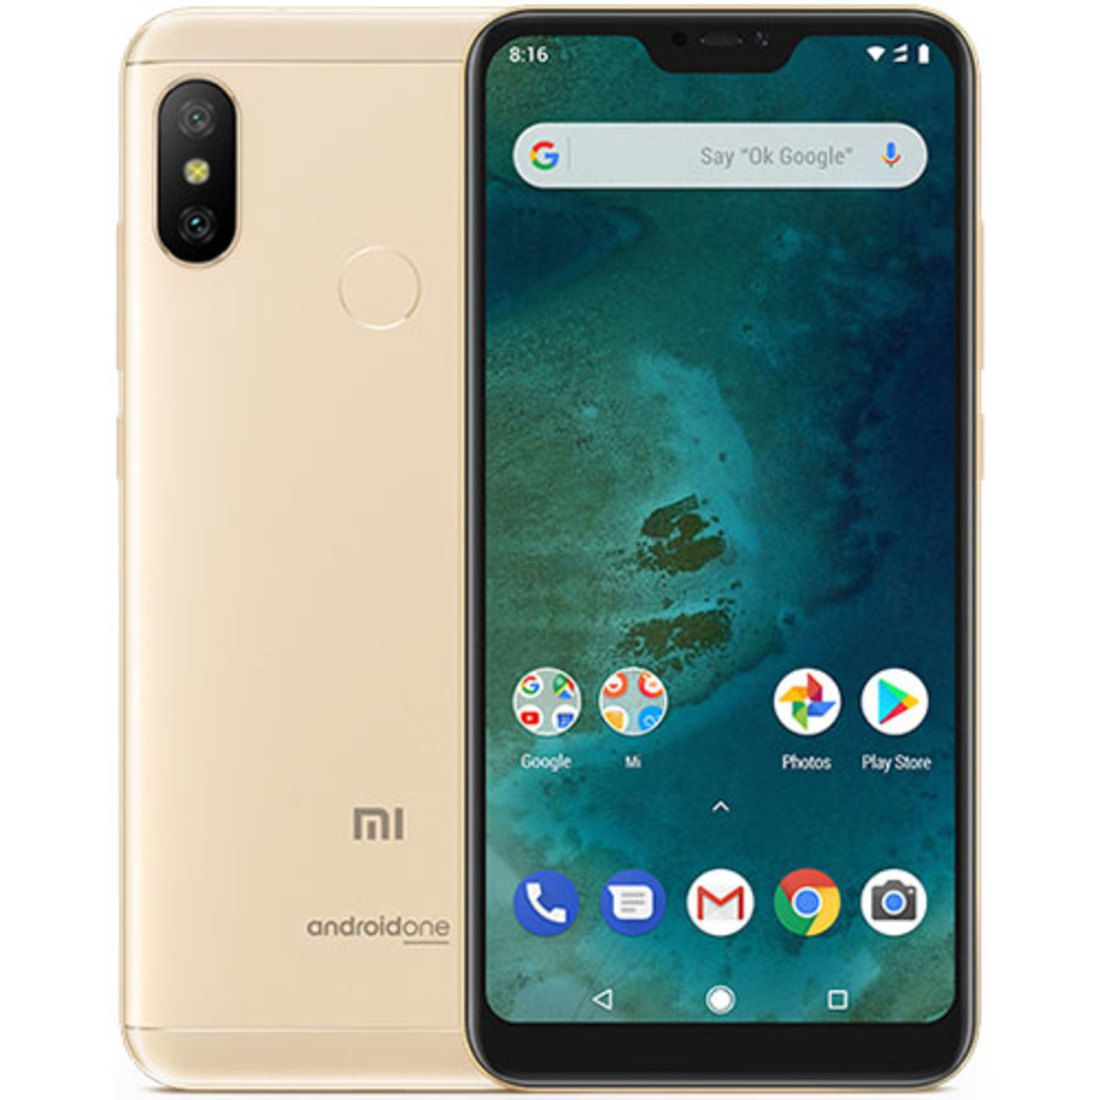 Smartphone Mi A2 Lite 4GB Ram Tela 5.84 64GB Camera Dupla 12+5MP - Dourado